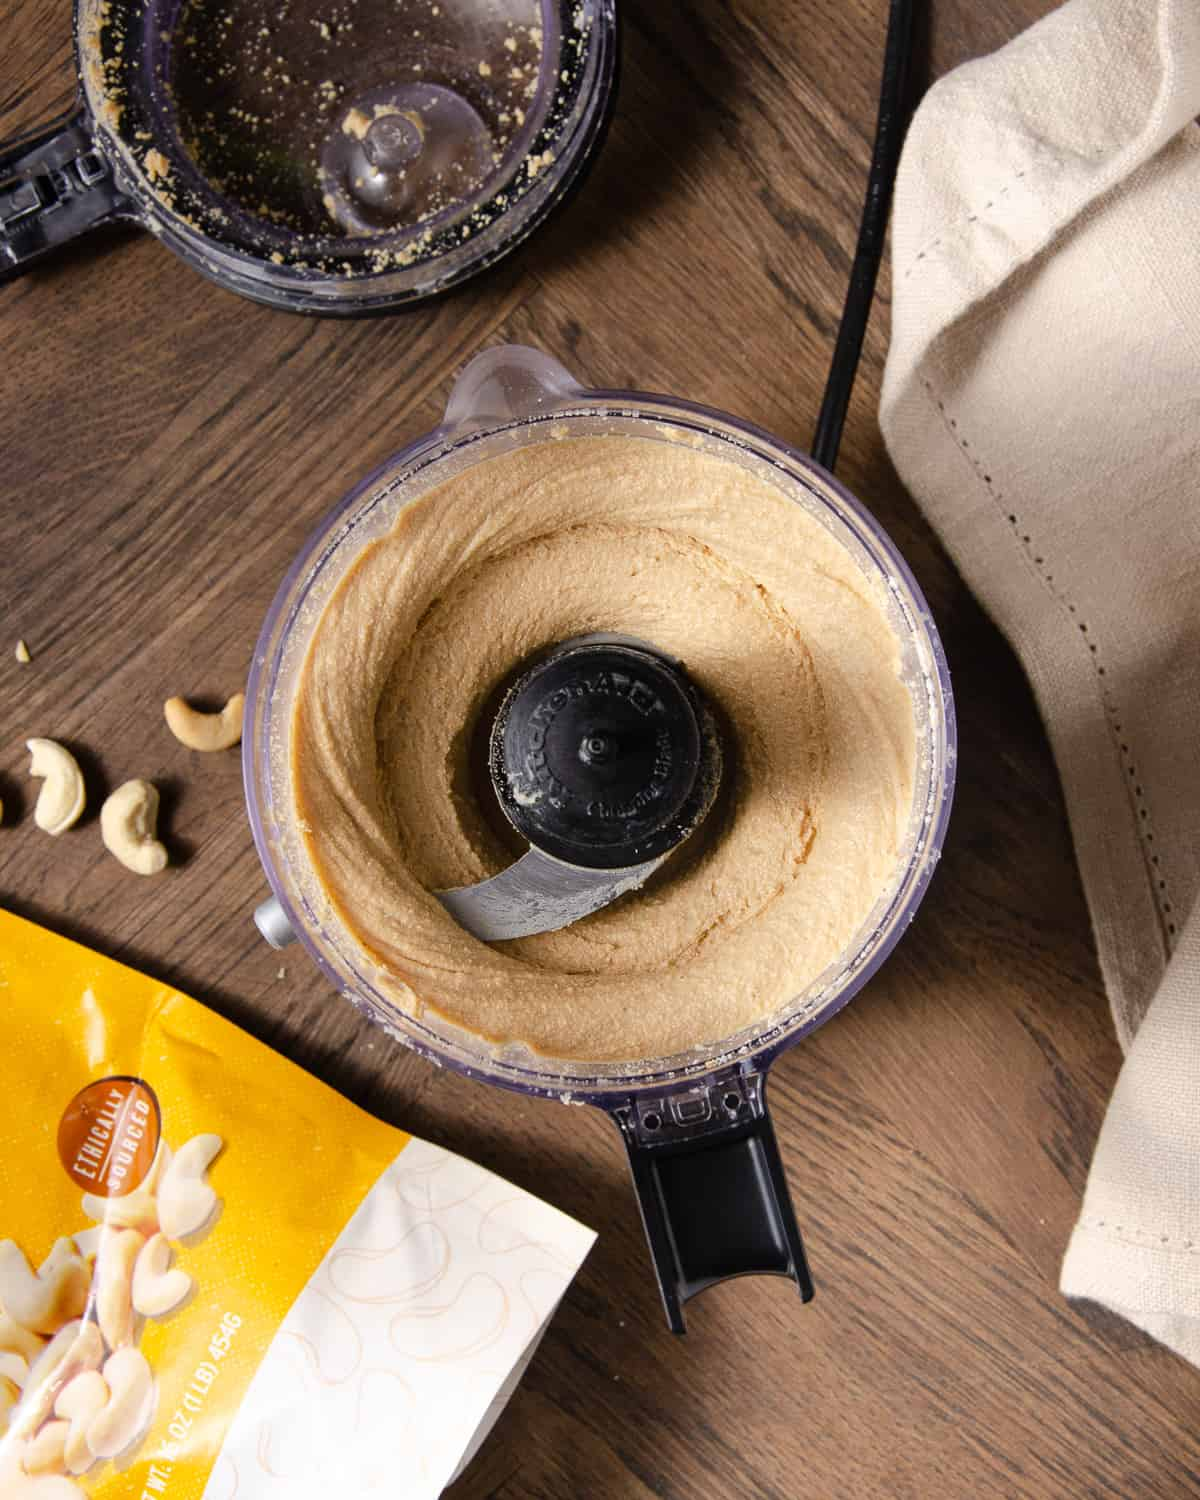 Cashews in the food processor after 5 minutes.